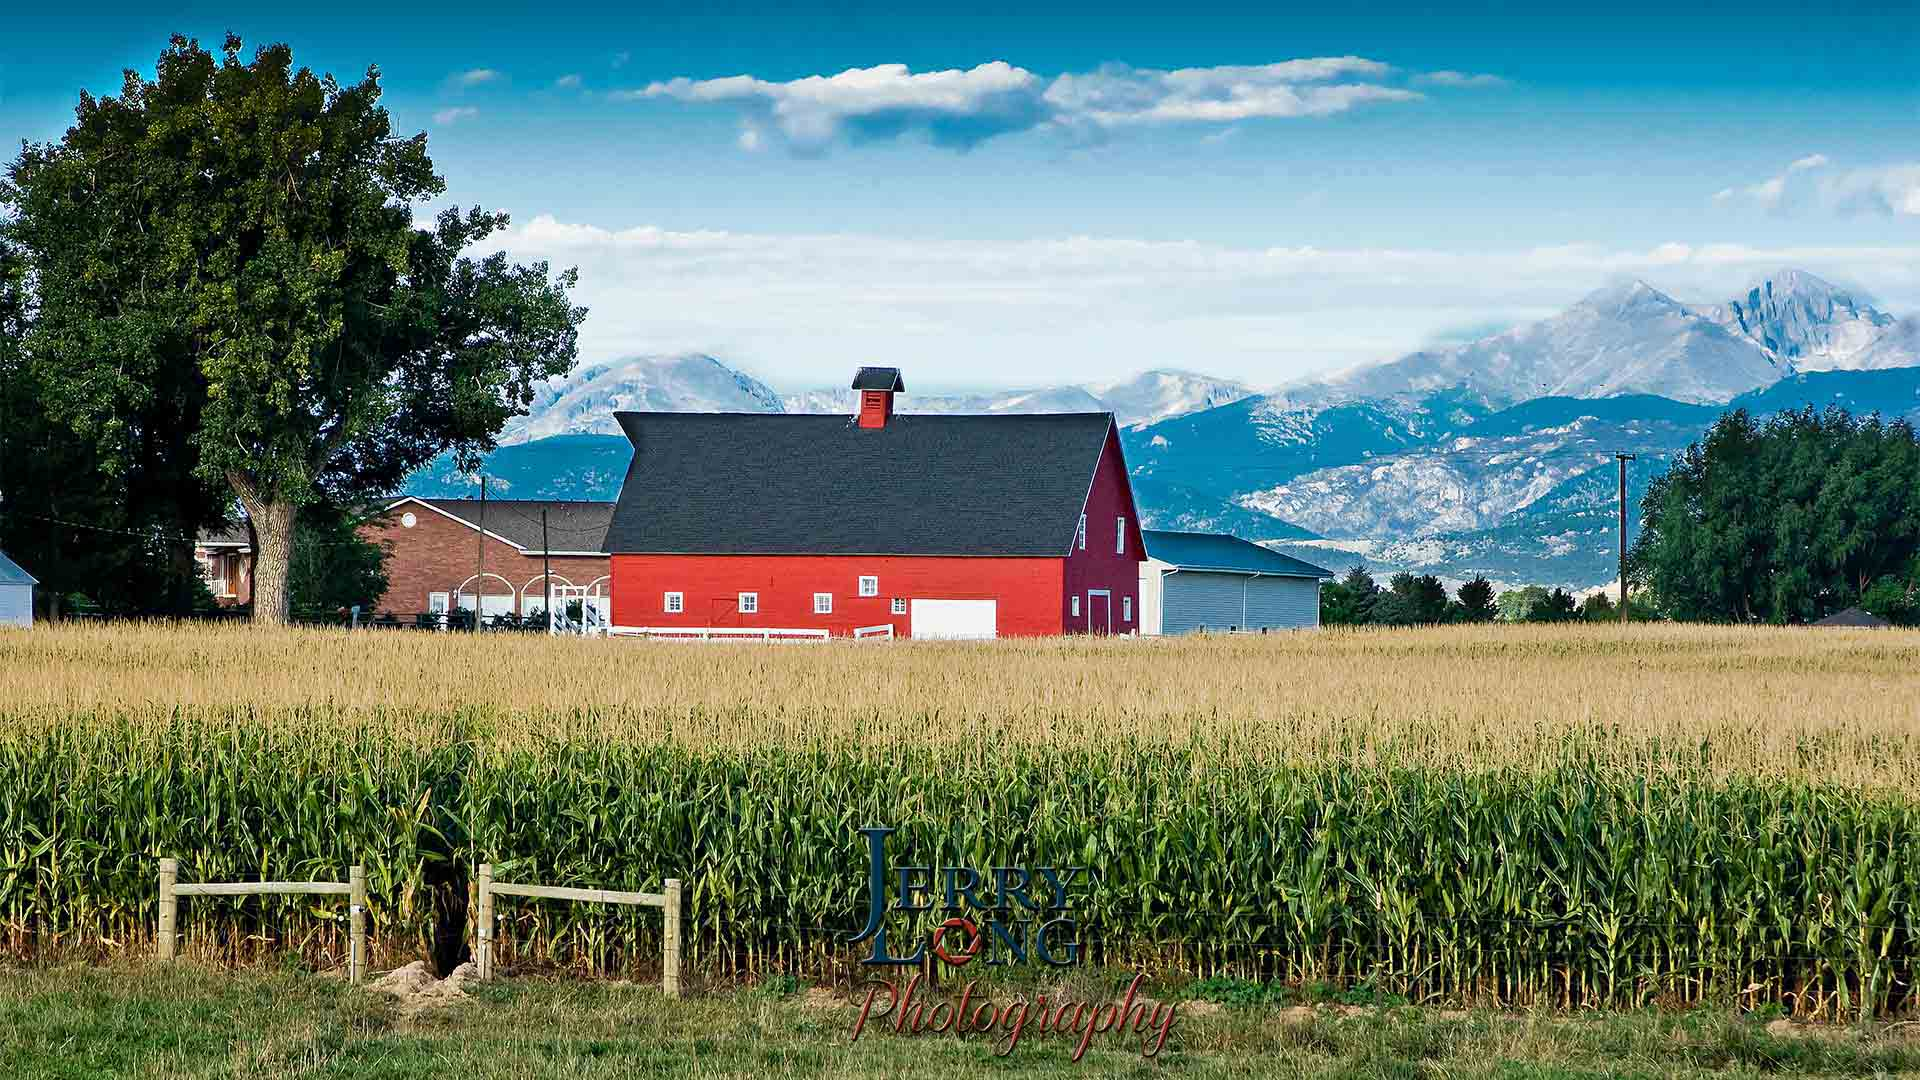 loveland-barn-mountains